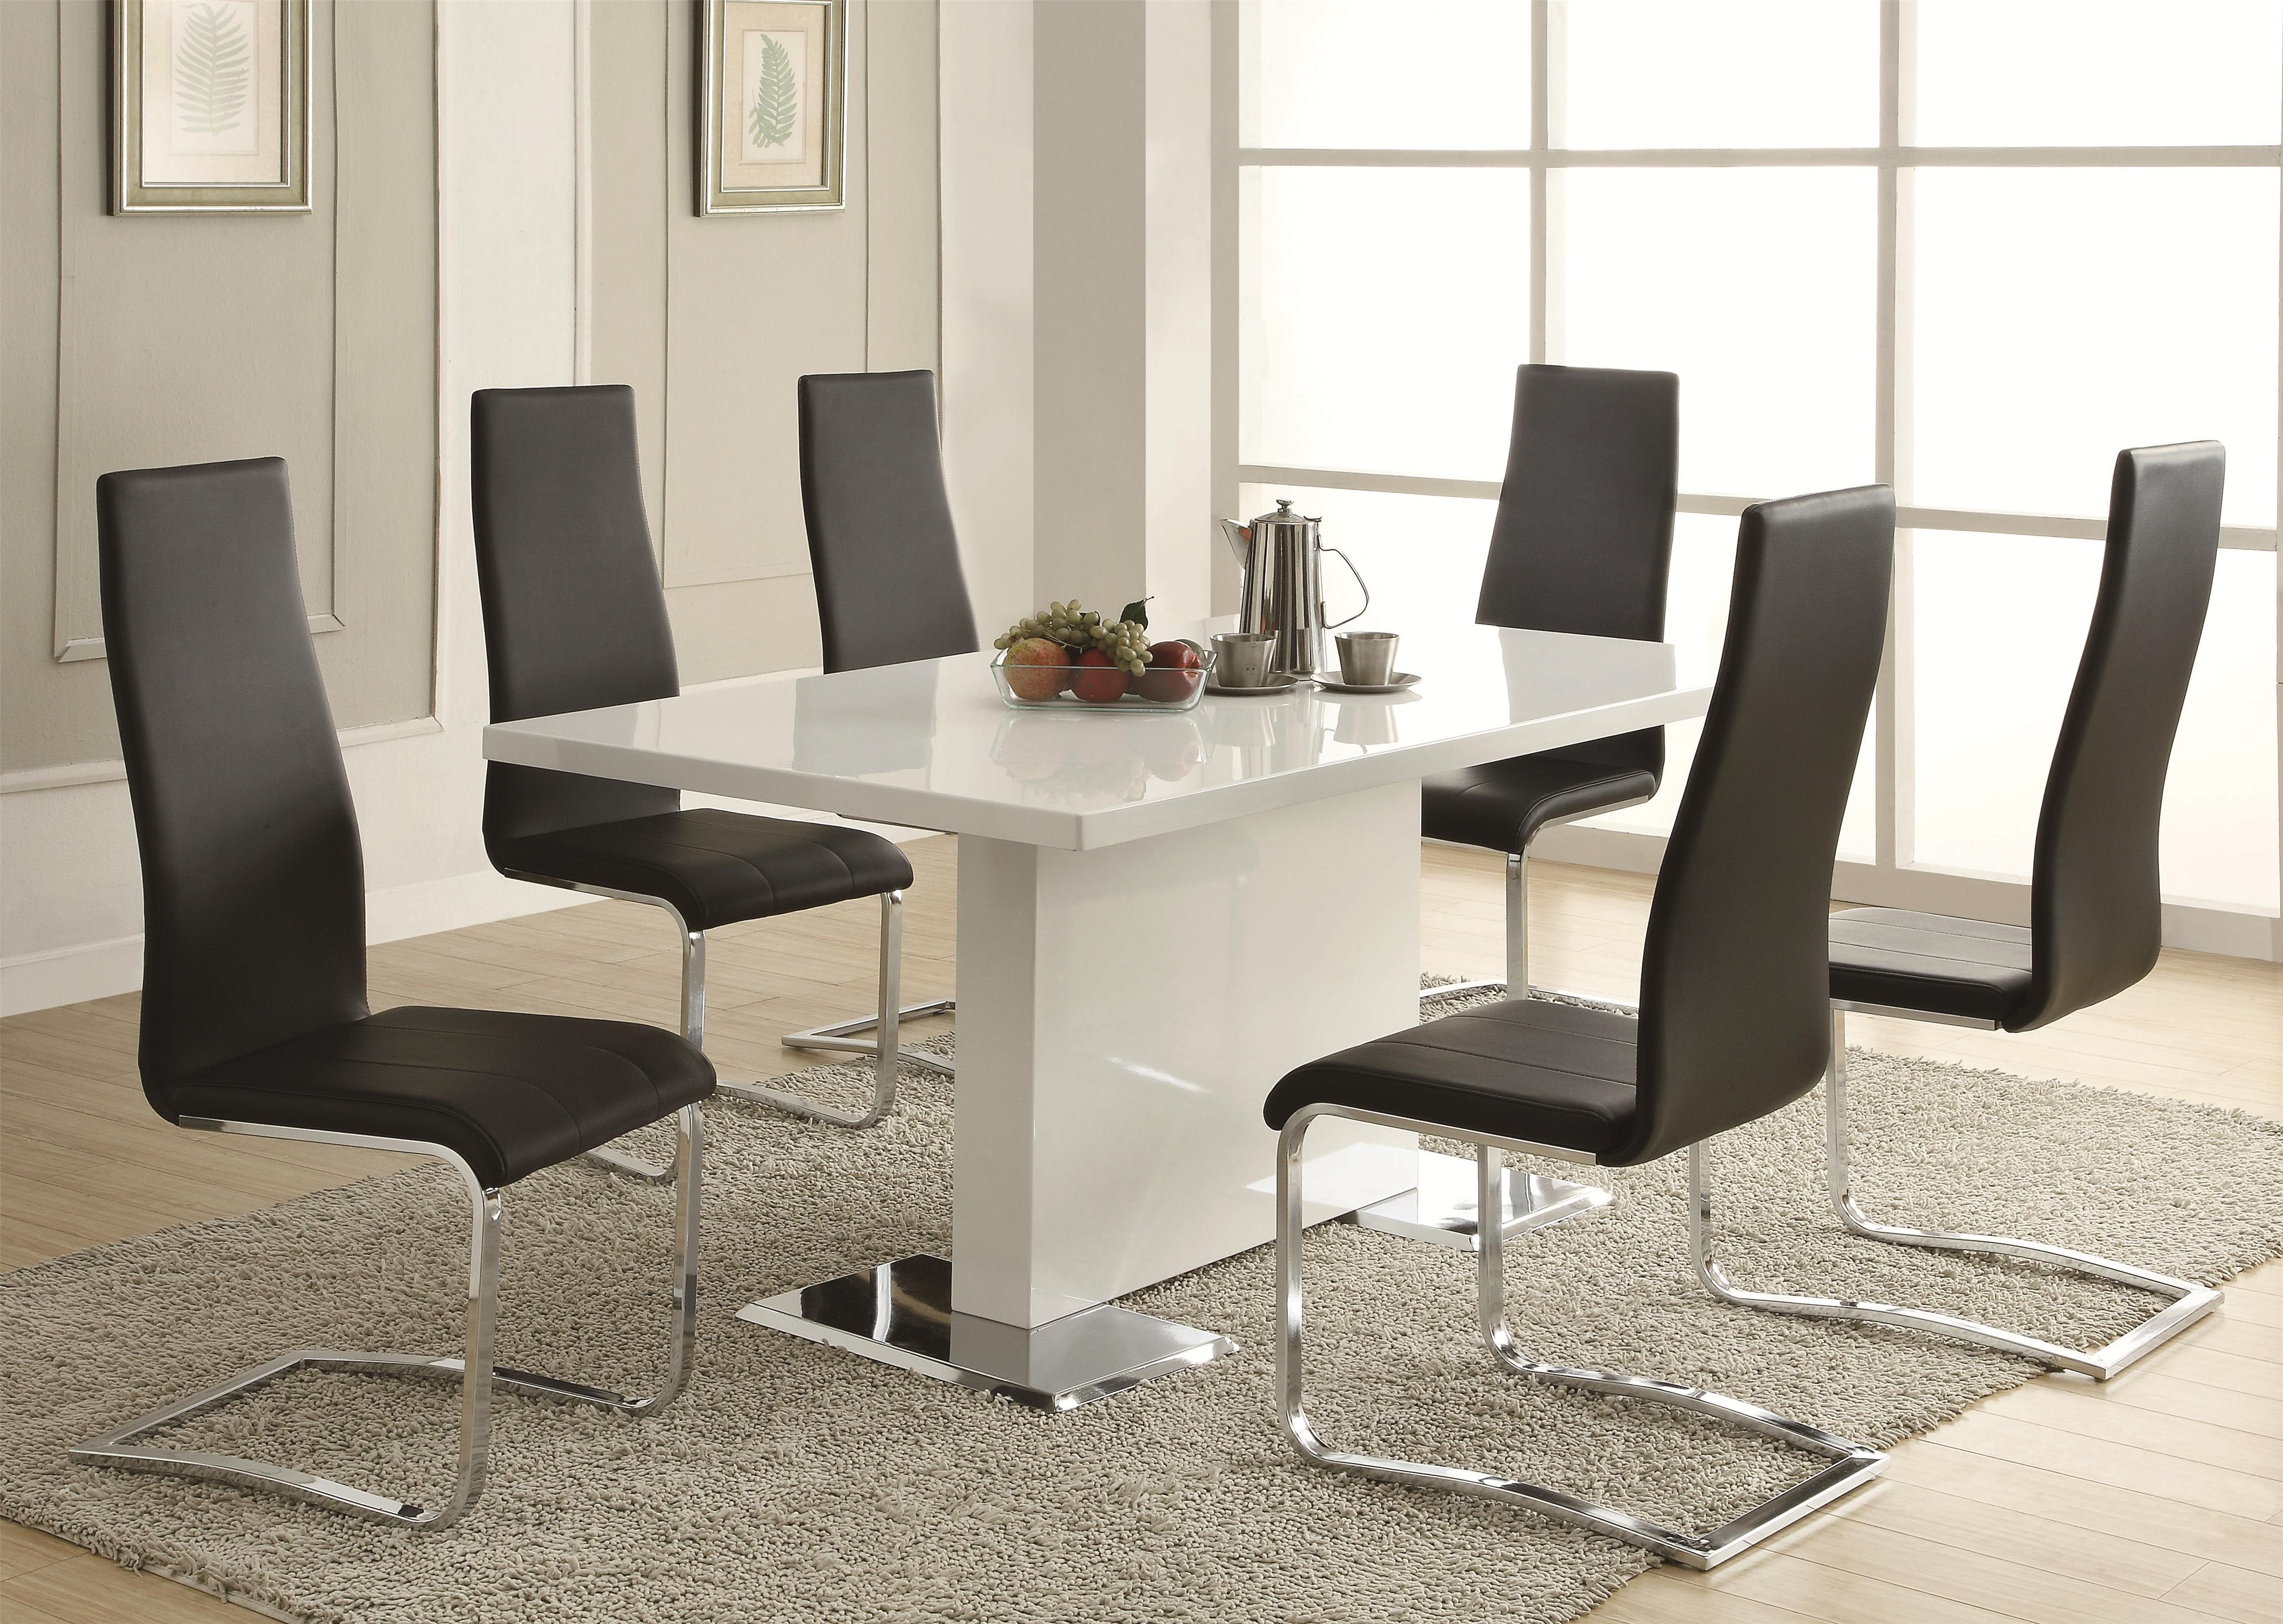 Modern Dining Table - Your Top Choice for a Modern Home ...